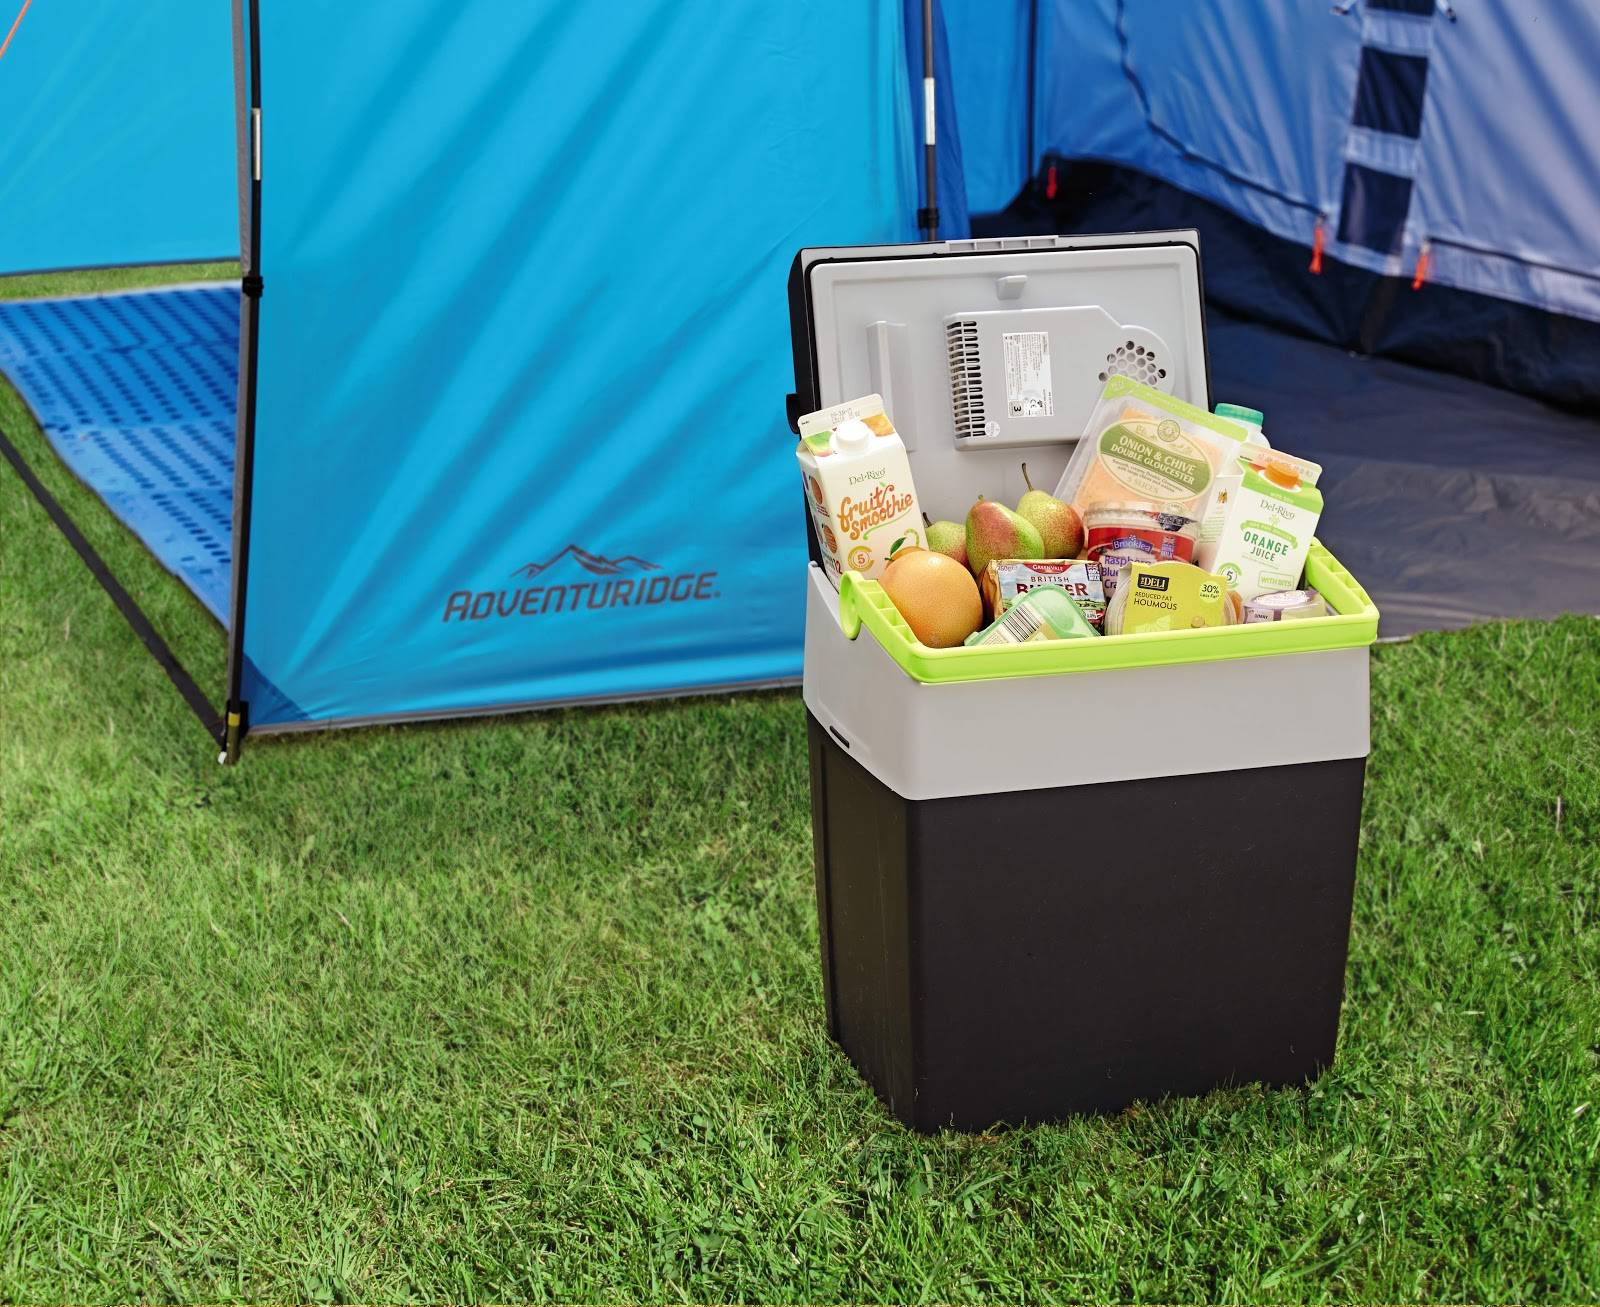 Aldi electric cool box £39.99 & Me and my shadow: Camping deals with Aldi